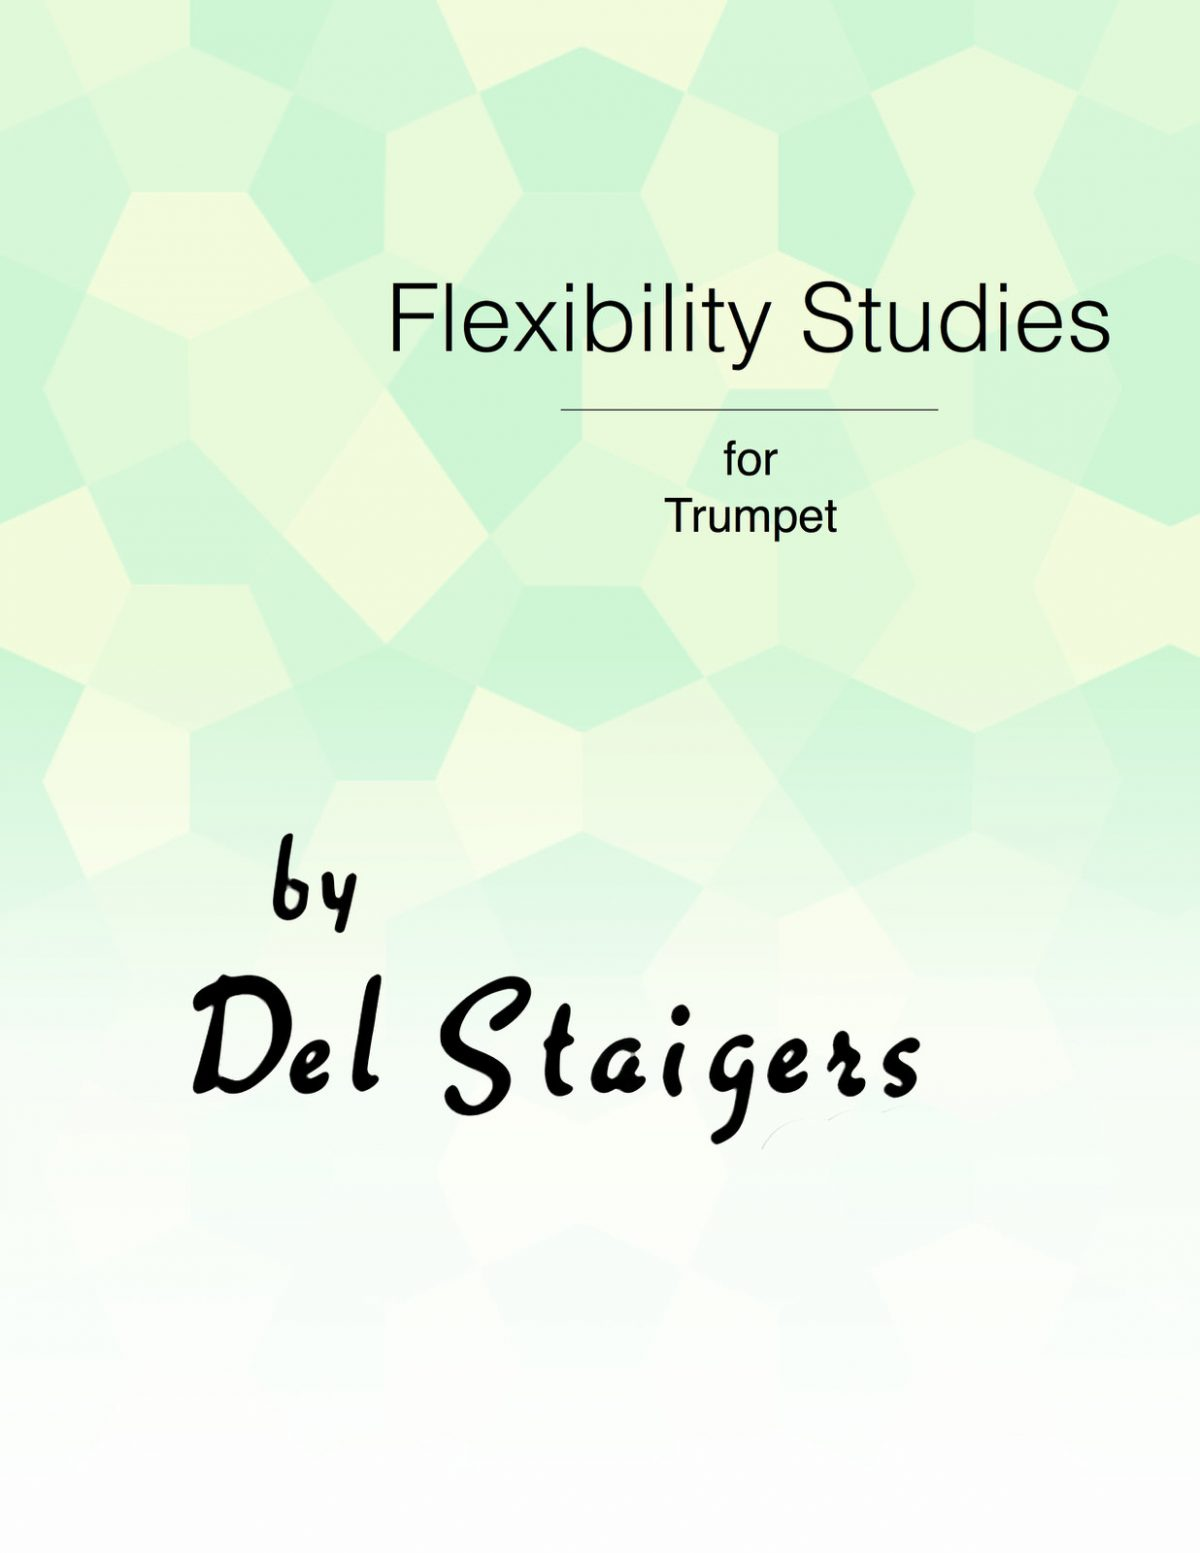 staigers-flexibility-studies-1